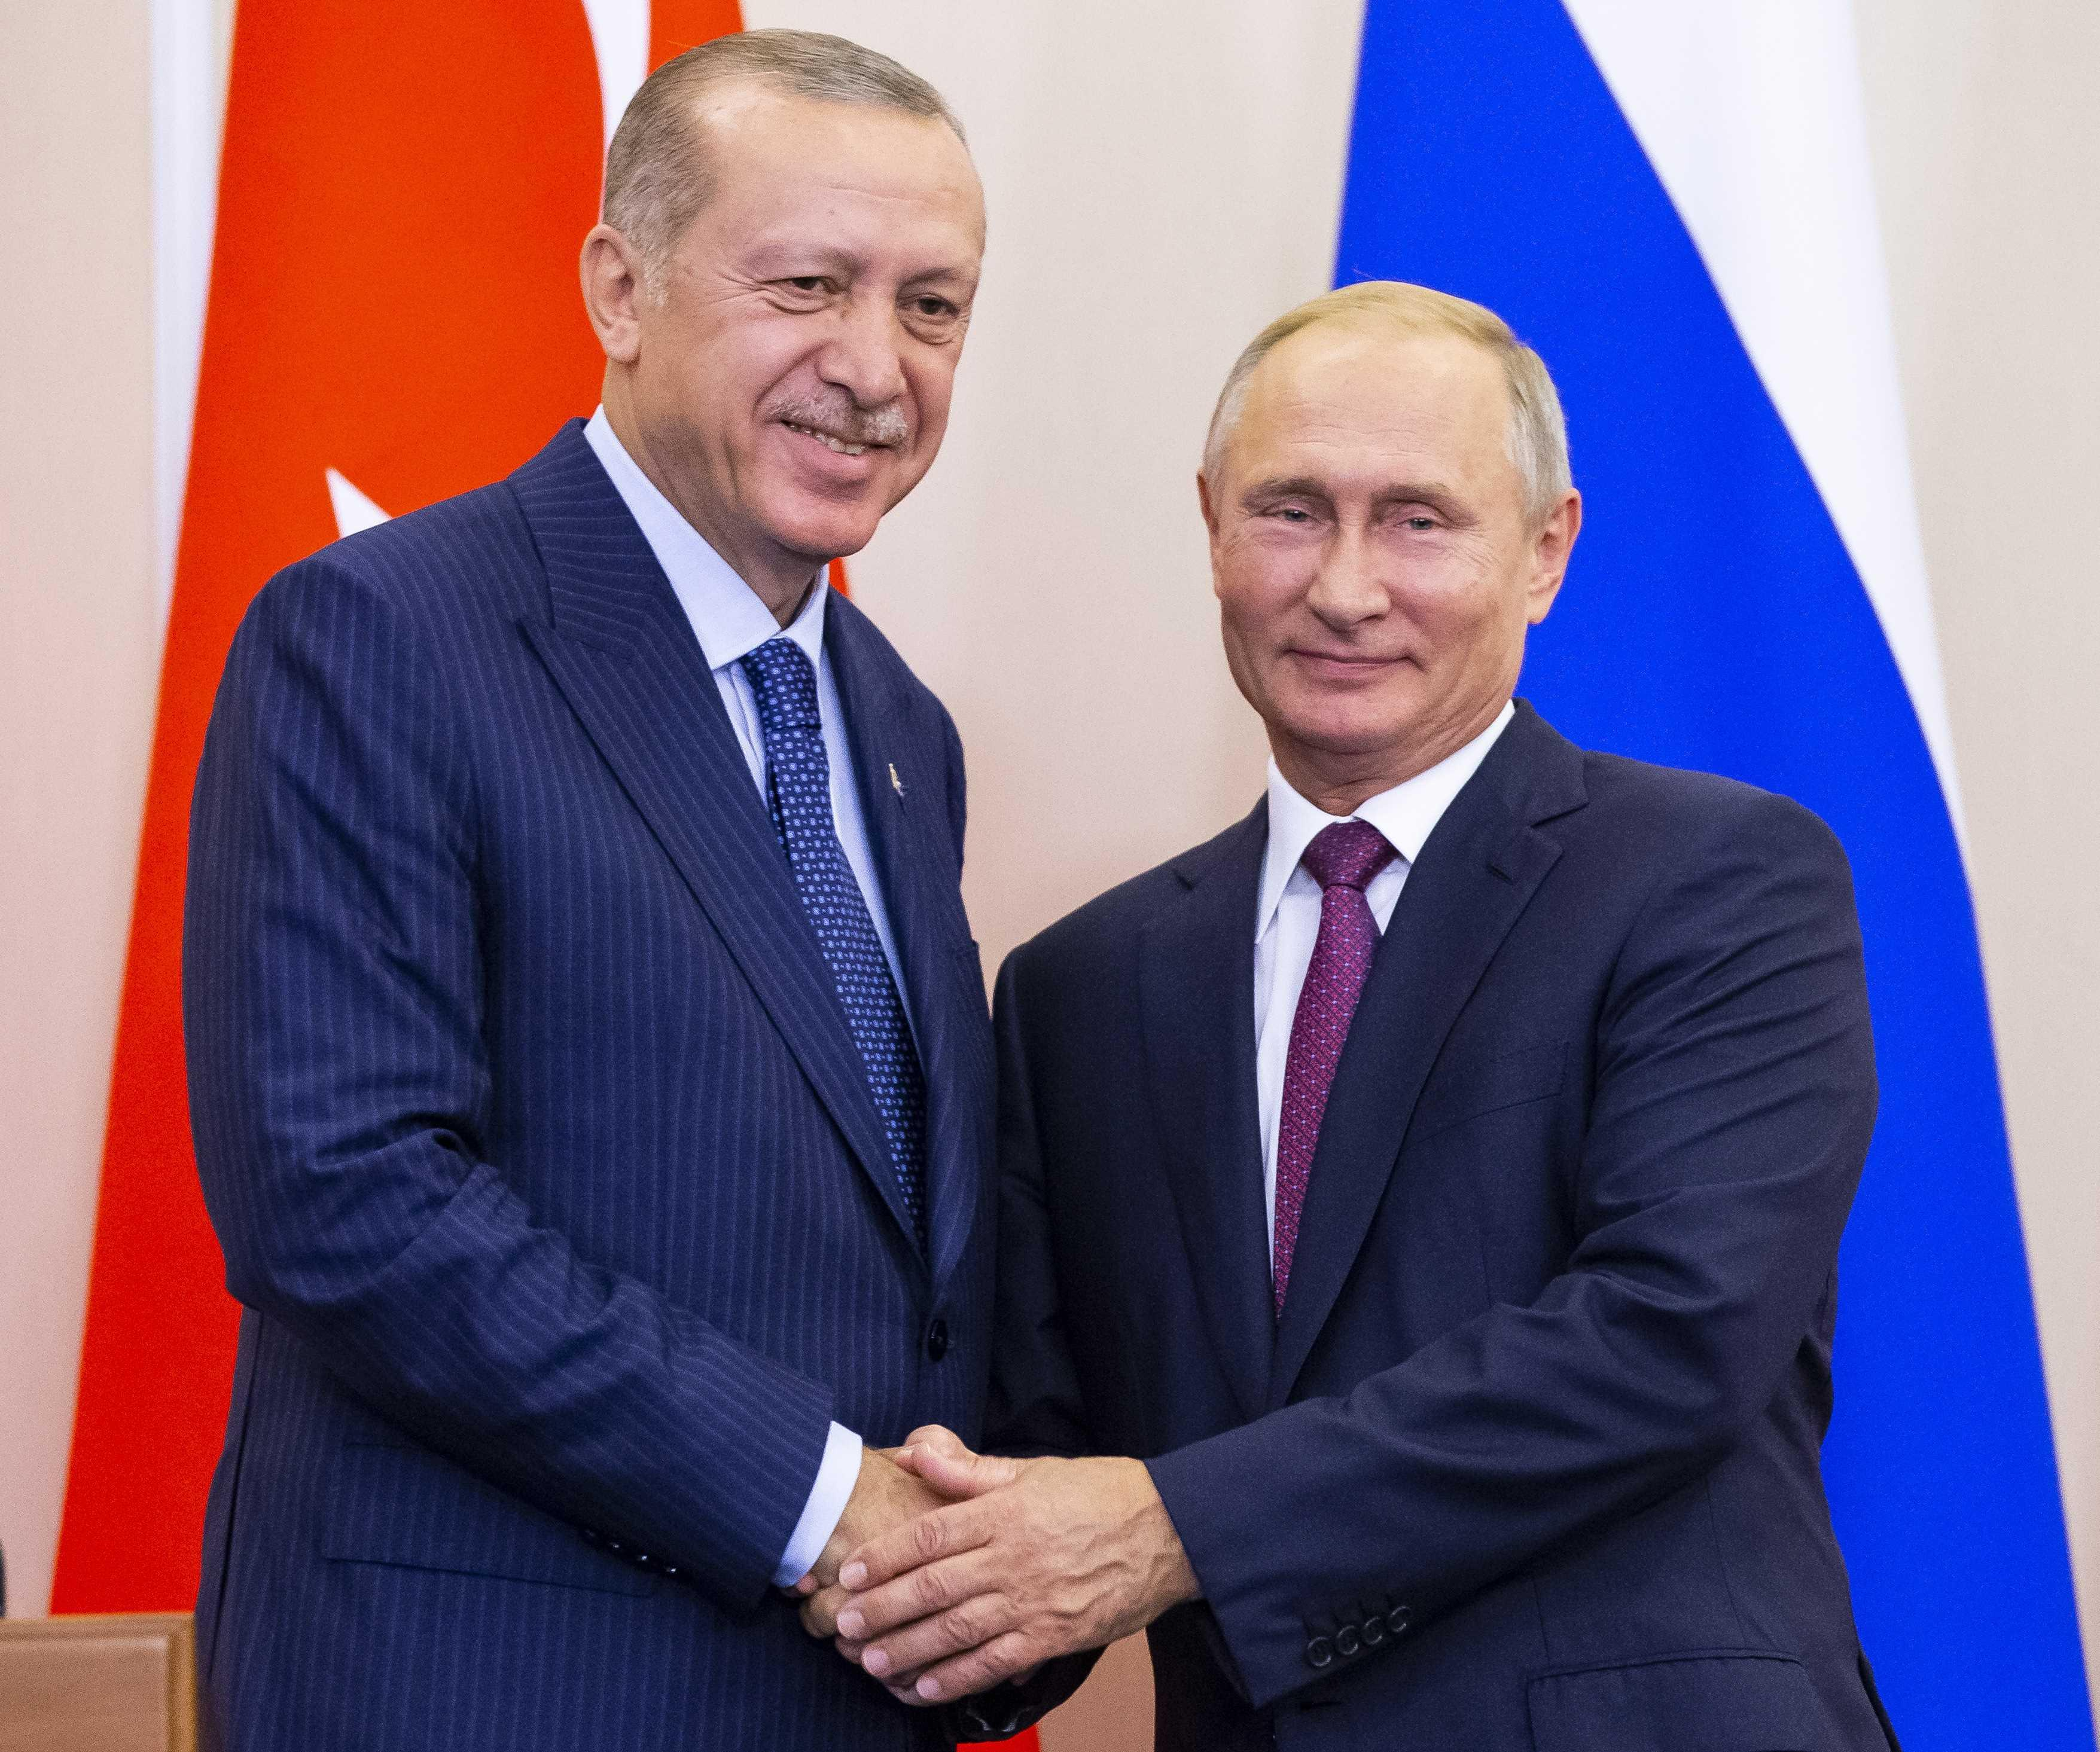 Russian President Vladimir Putin (R) and his Turkish counterpart Tayyip Erdogan shake hands during a news conference following their talks in Sochi, Russia September 17, 2018. Alexander Zemlianichenko/Pool via